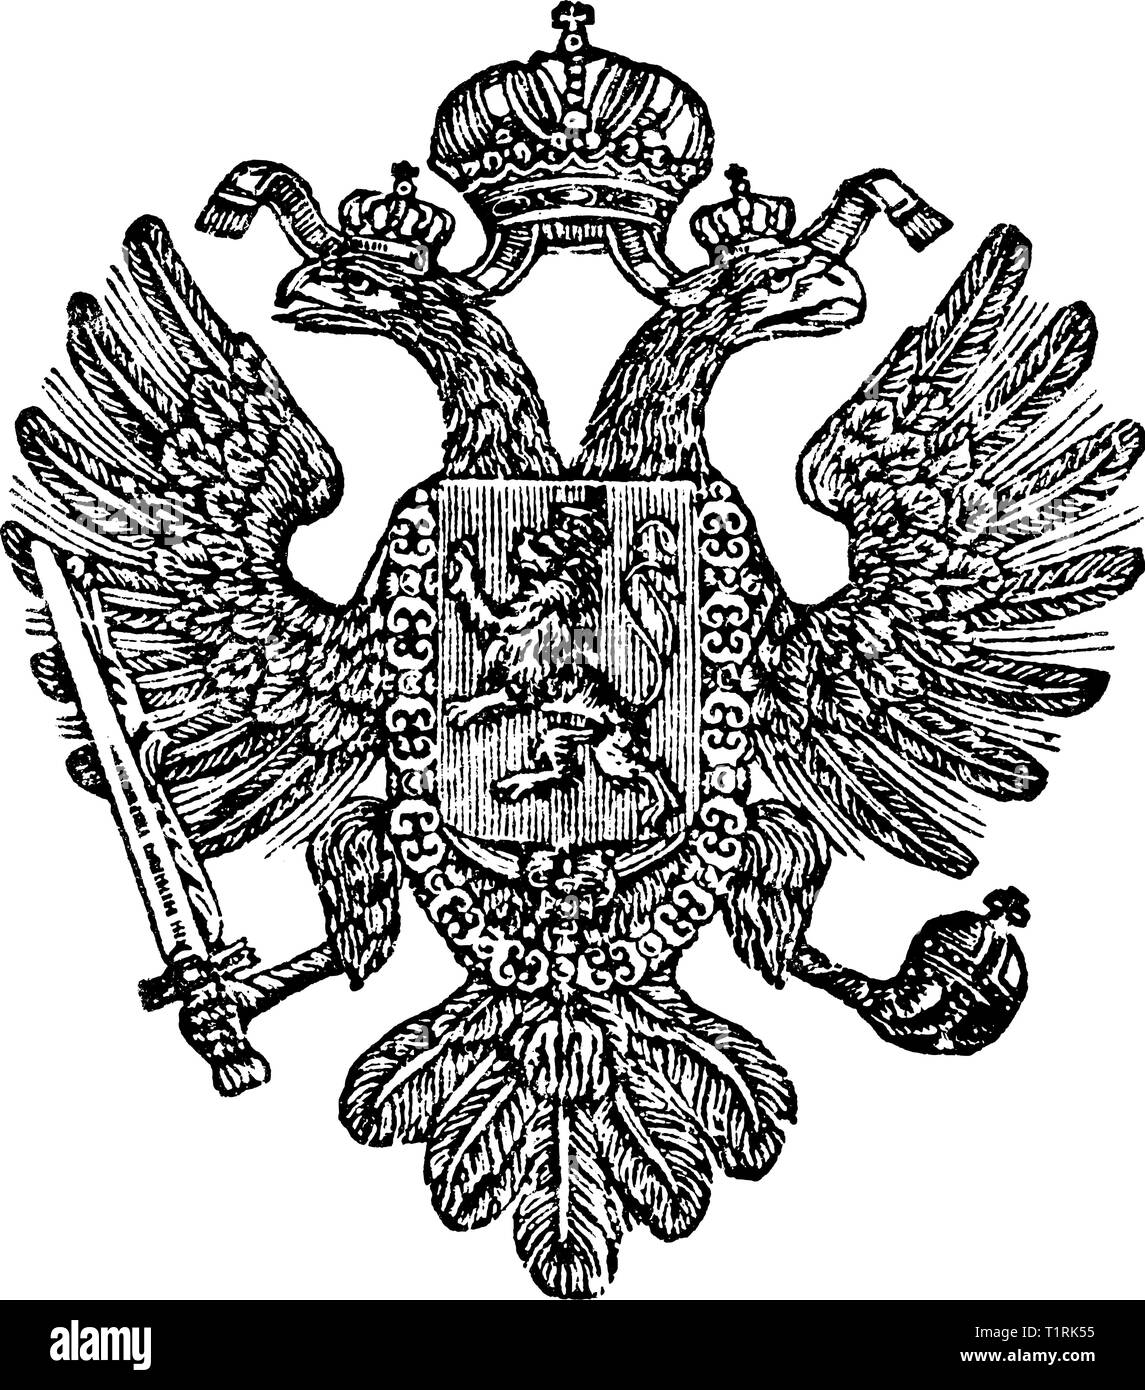 Vintage antique line drawing or engraved illustration of coat of arms of Kingdom of Bohemia as part of Austrian Empire. - Stock Image